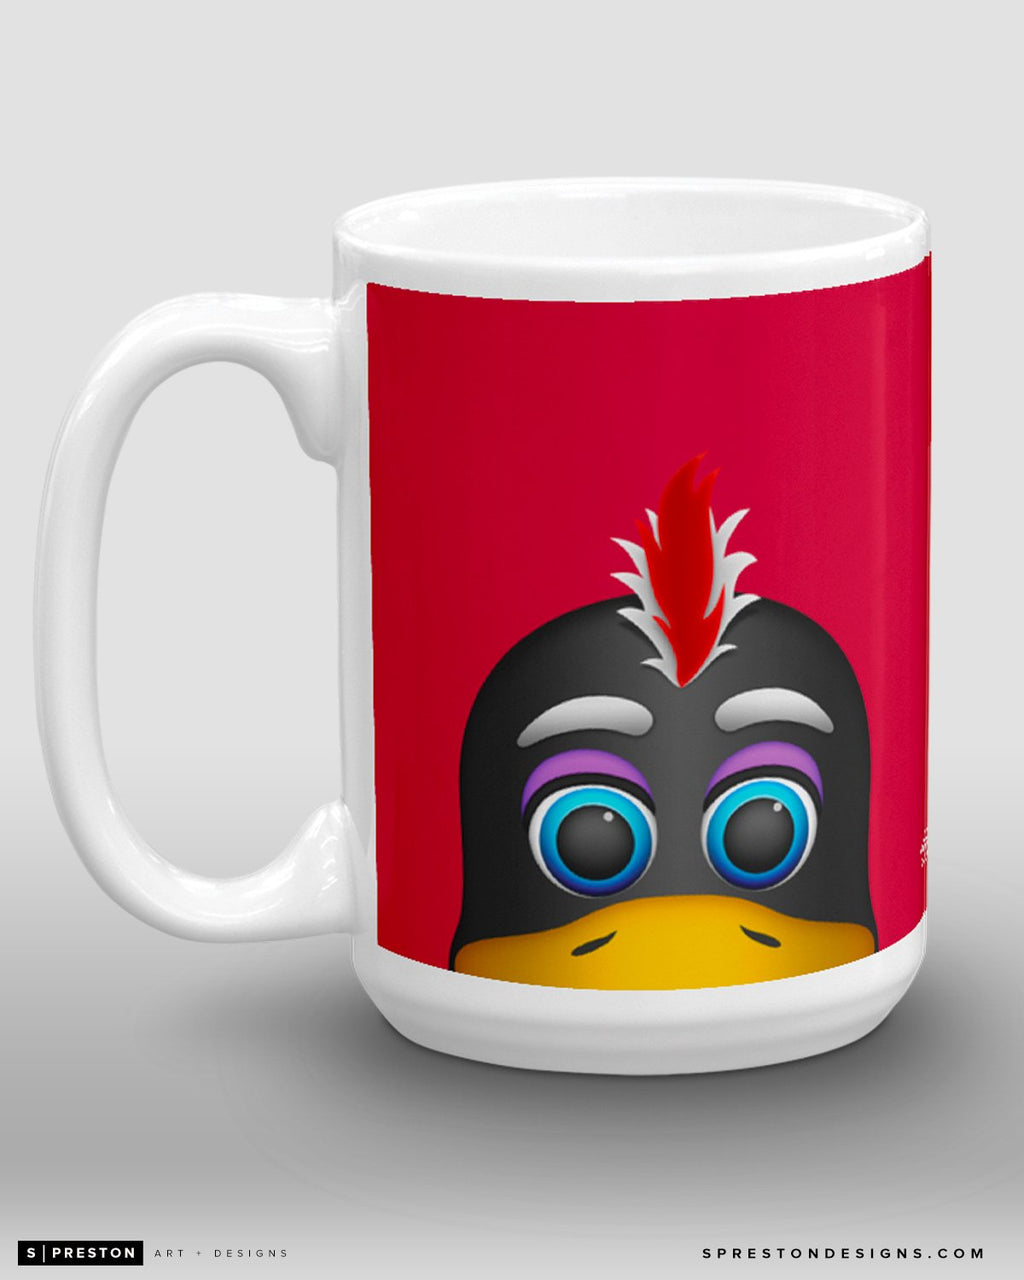 Minimalist Tommy Hawk Coffee Mug - NHL Licensed - Chicago Blackhawks Mascot